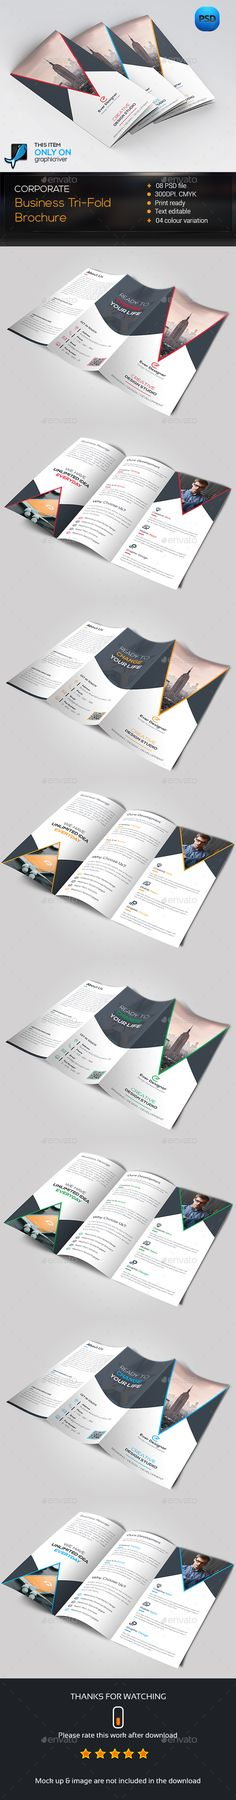 Corporate Trifold Brochure Template PSD #design Download: http://graphicriver.net/item/corporate-trifold-brochure/14272705?ref=ksioks